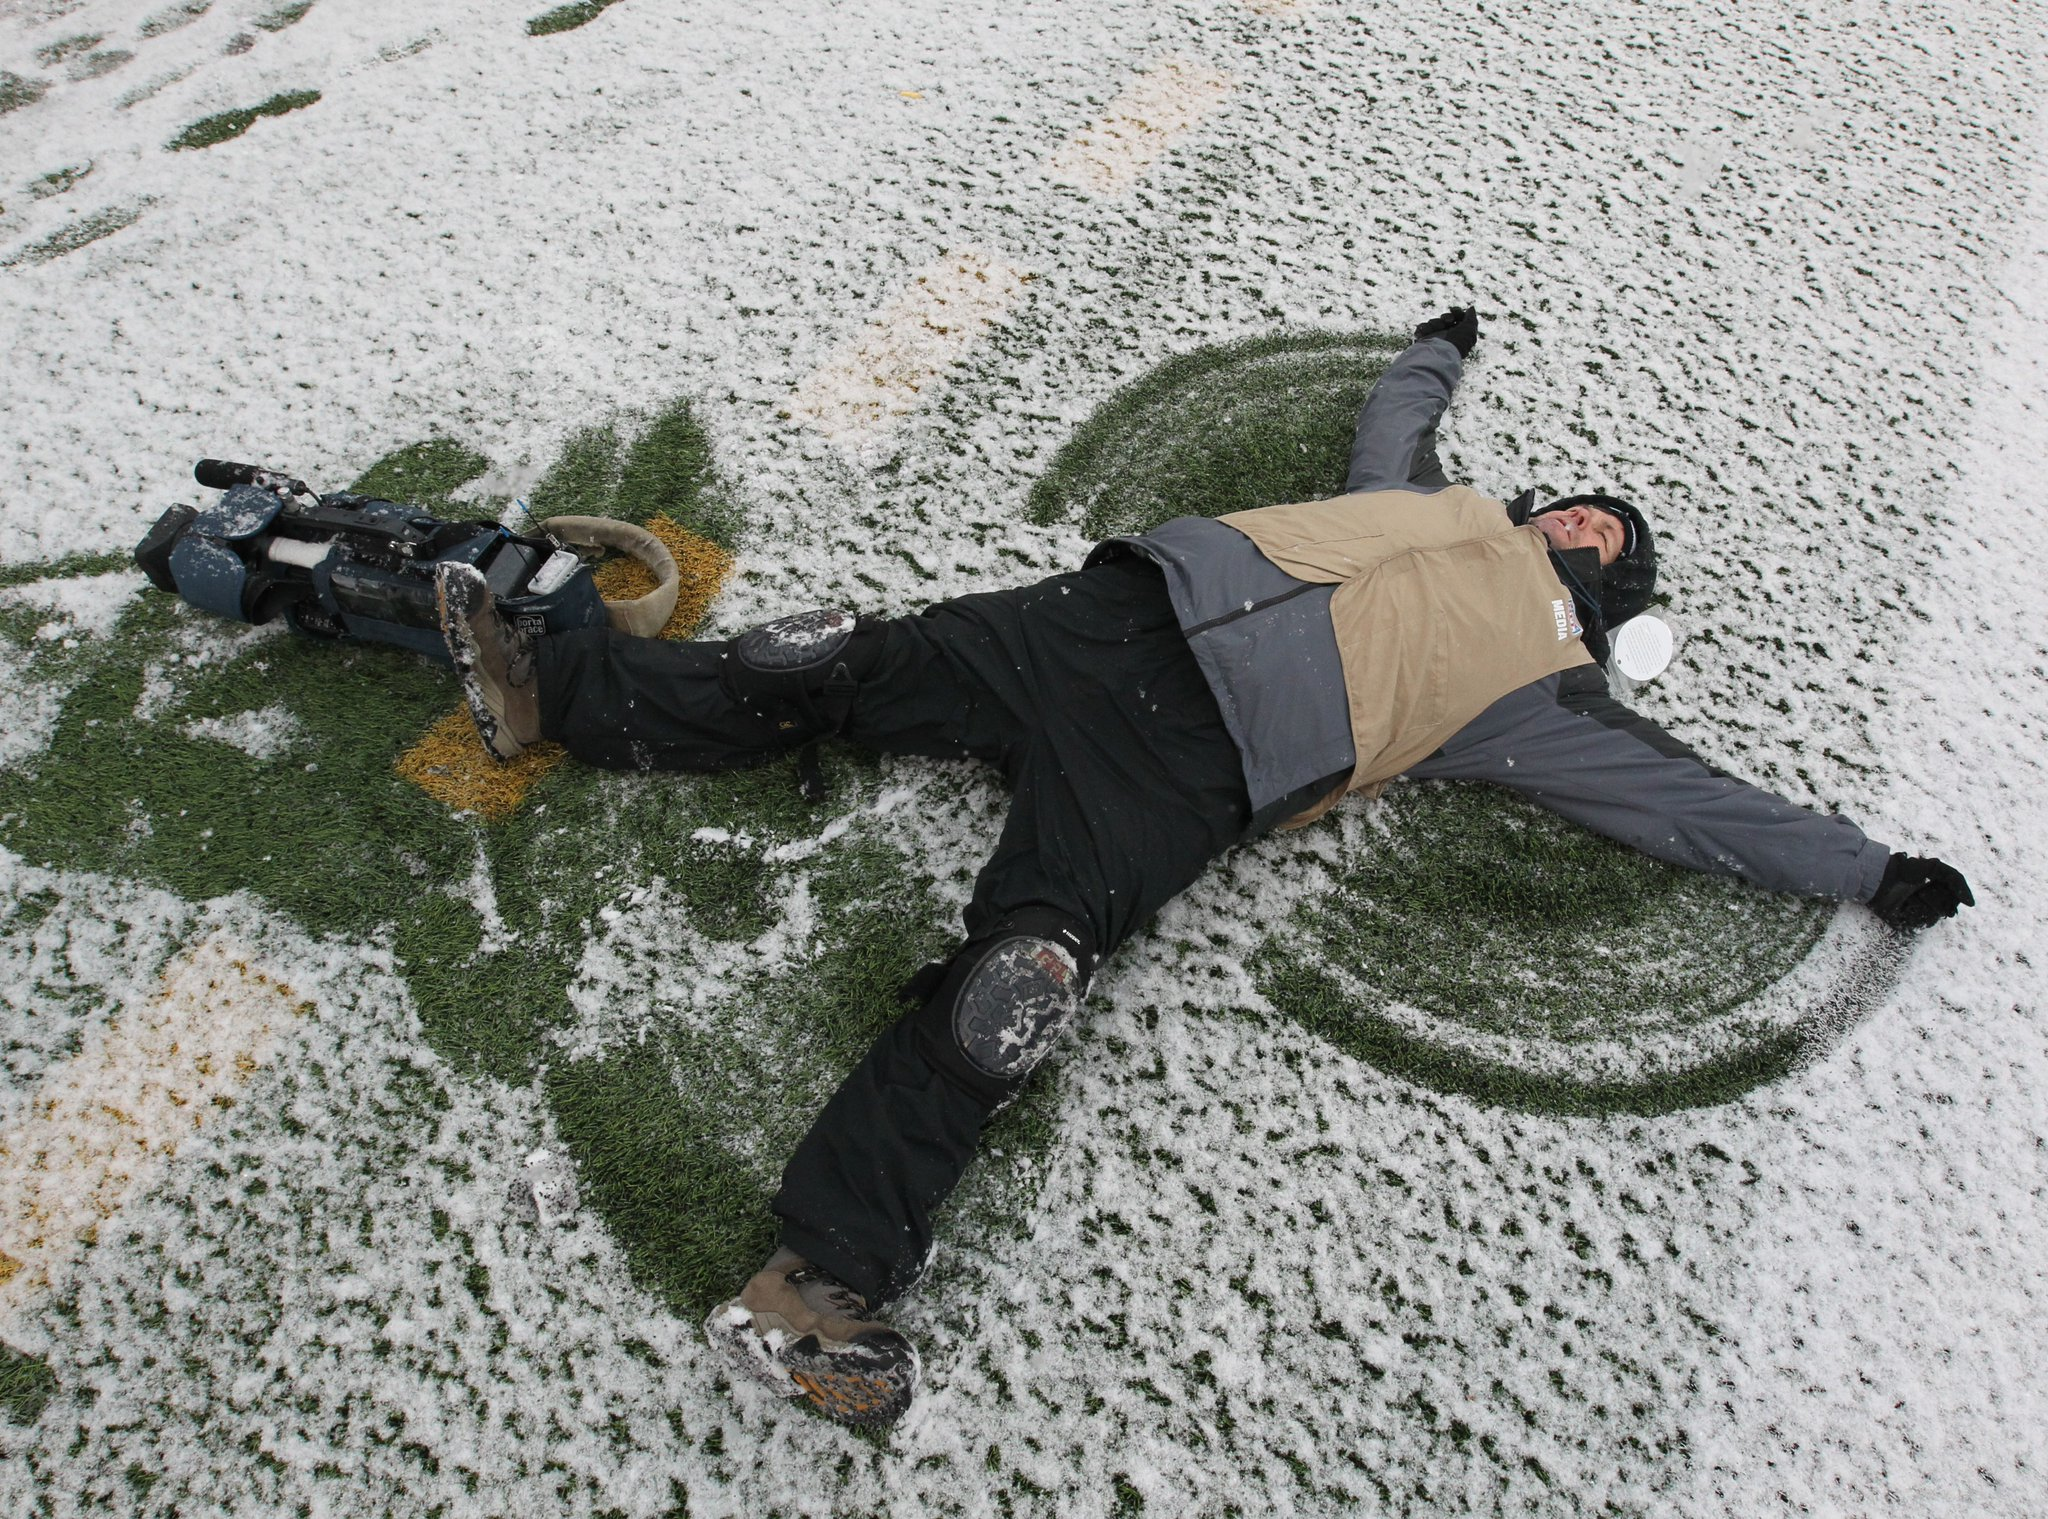 Some people are enjoying today's snow – Scott Swenson took advantage of it to make a snow angel during the Bills/Steelers game – but it could lead to dangerously icy roads tonight. (James P. McCoy/Buffalo News)